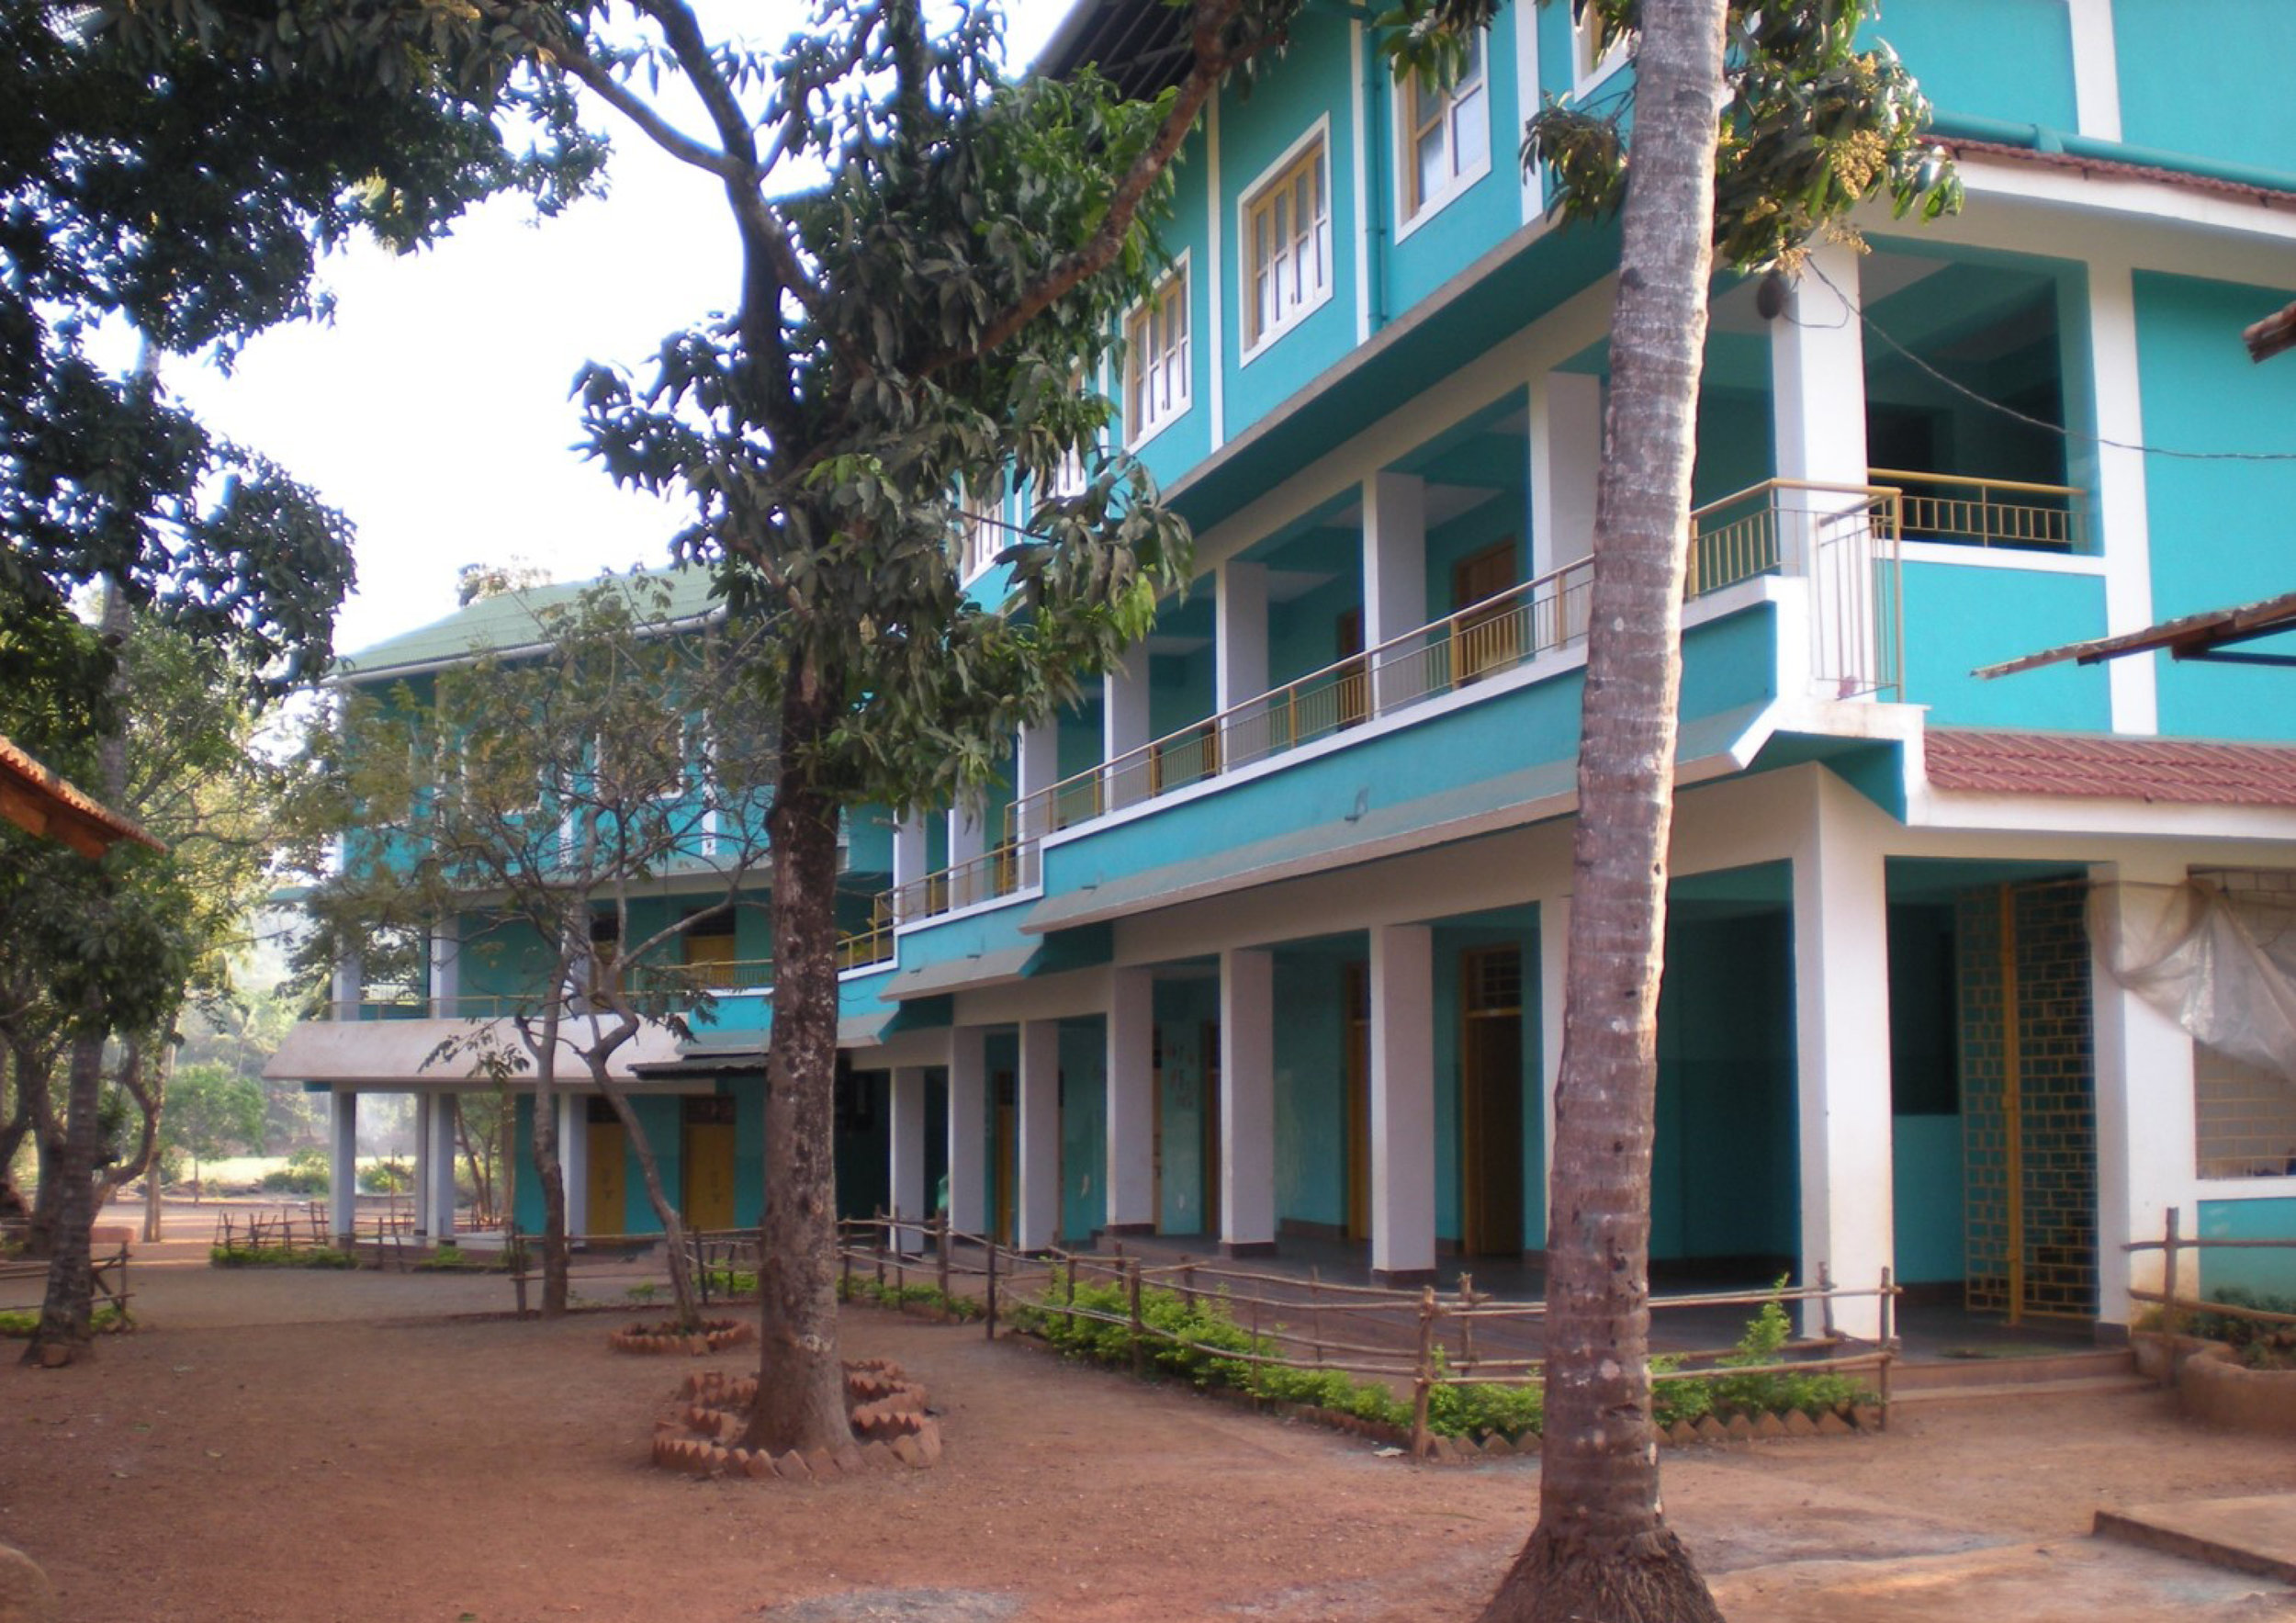 SHANTI NIKETAN SCHOOL FOR STREET CHILDREN - GOA / INDIA